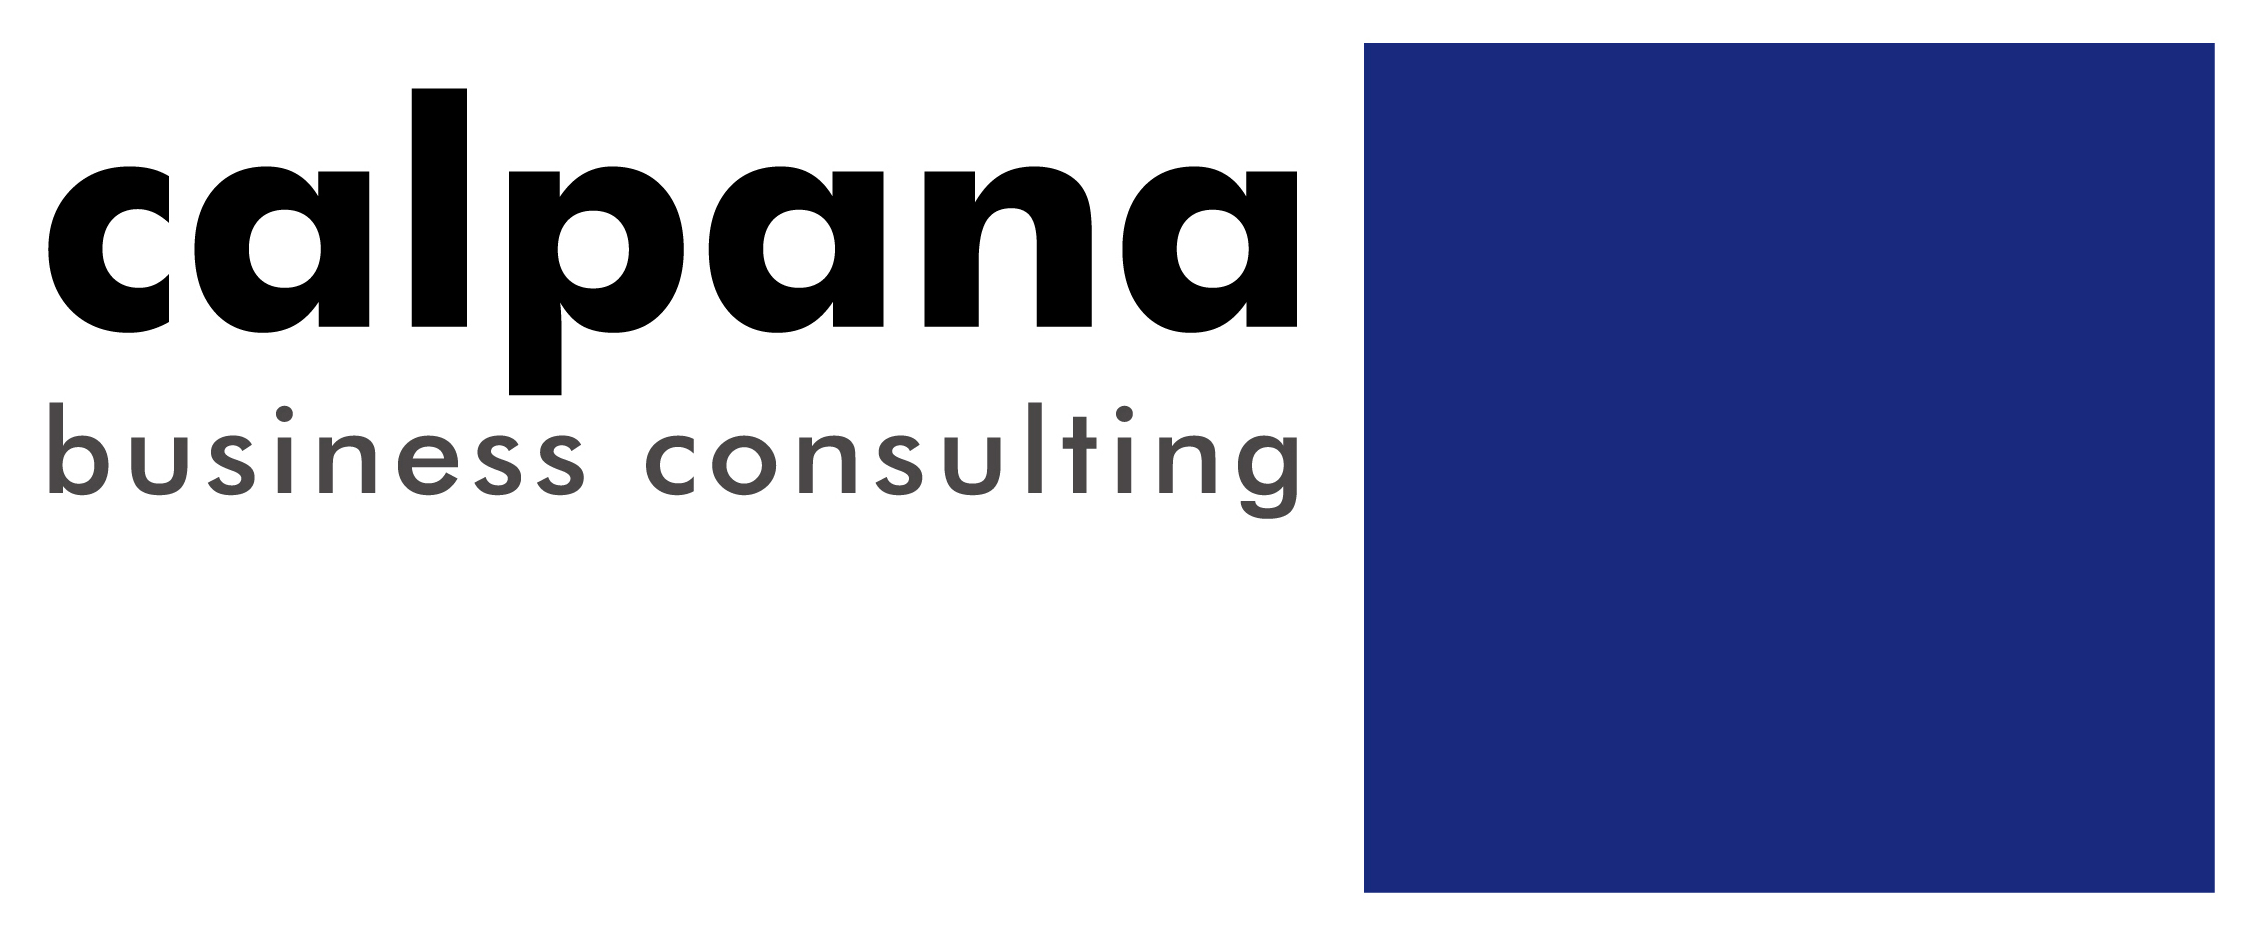 Calpana business consulting GmbH